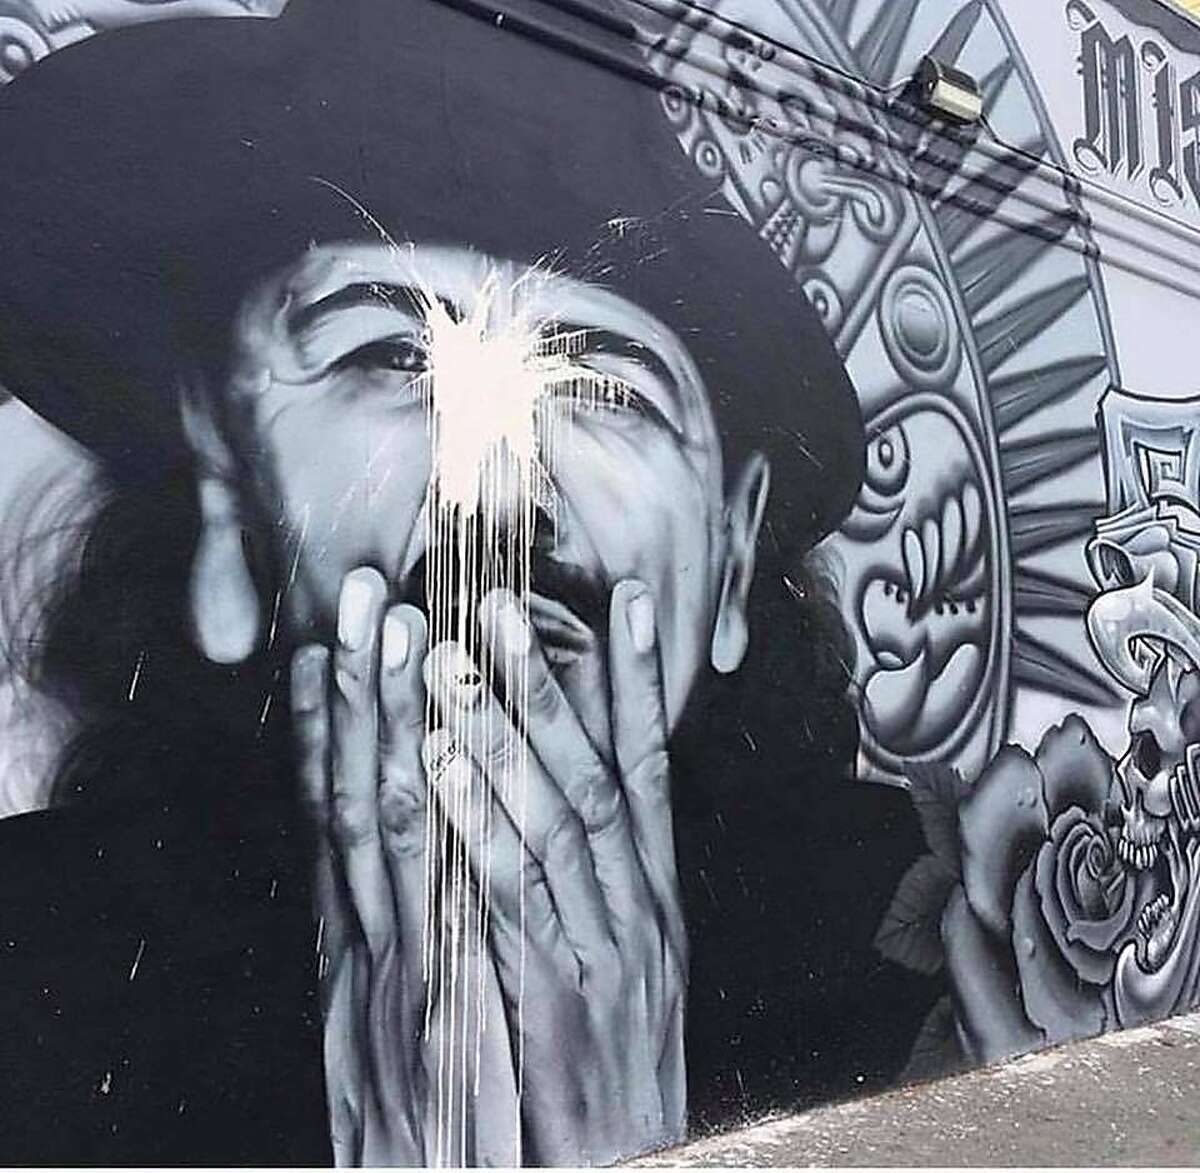 A mural of Carlos Santana at 19th and Mission streets was vandalized on July 14, 2018 with what appeared to be white paint. The muralist later restored the mural.